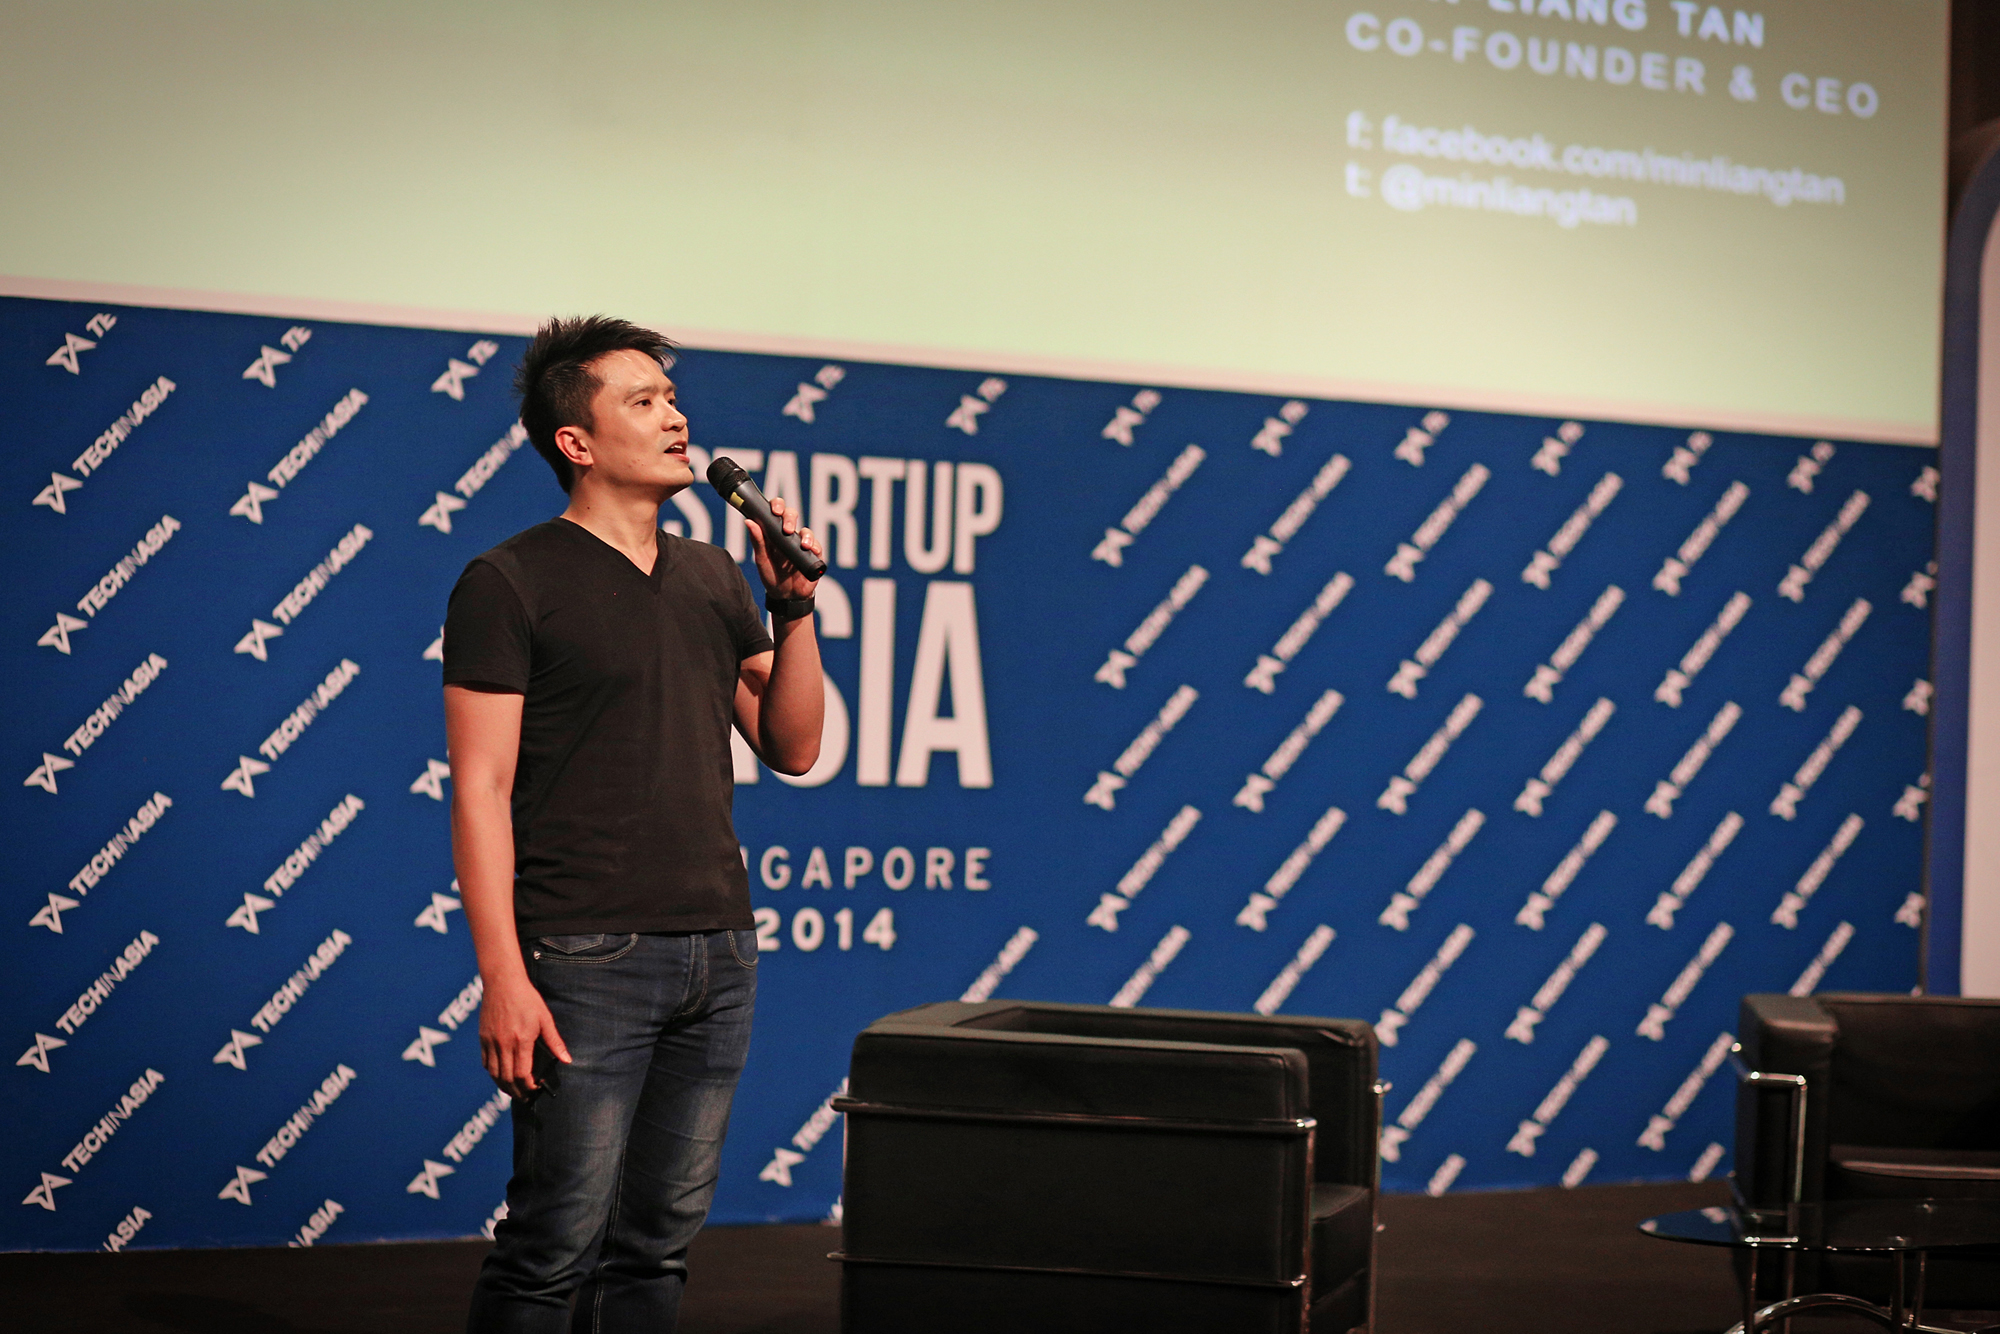 STARTUP ASIA SINGAPORE, Event Photography